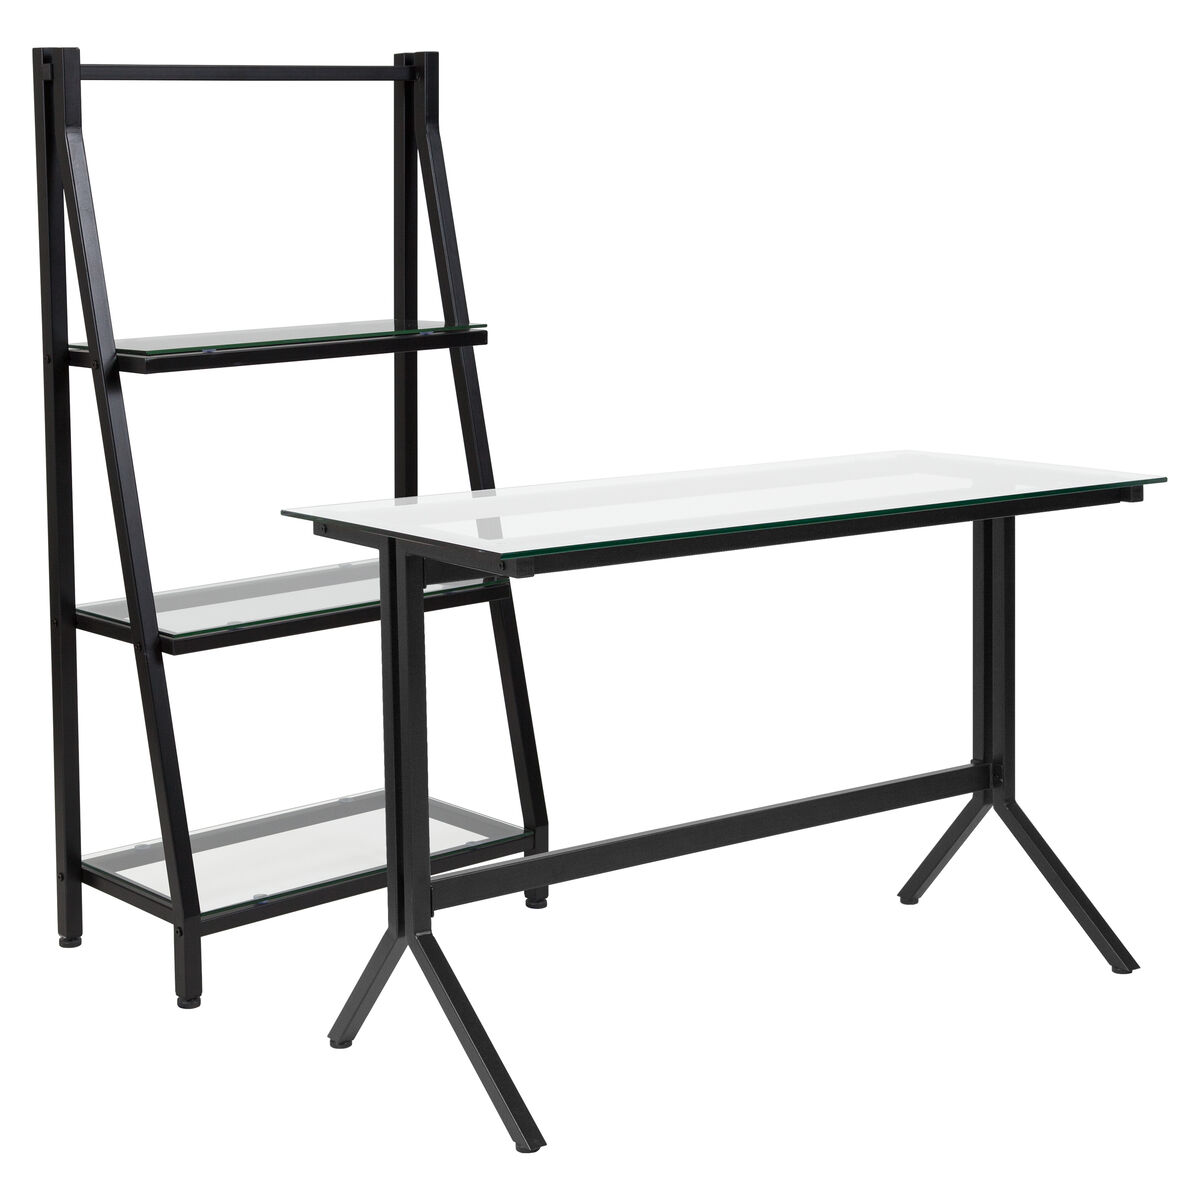 Our Highland Collection Glass Computer Desk And Bookshelf With Black Metal Frame Is On Sale Now